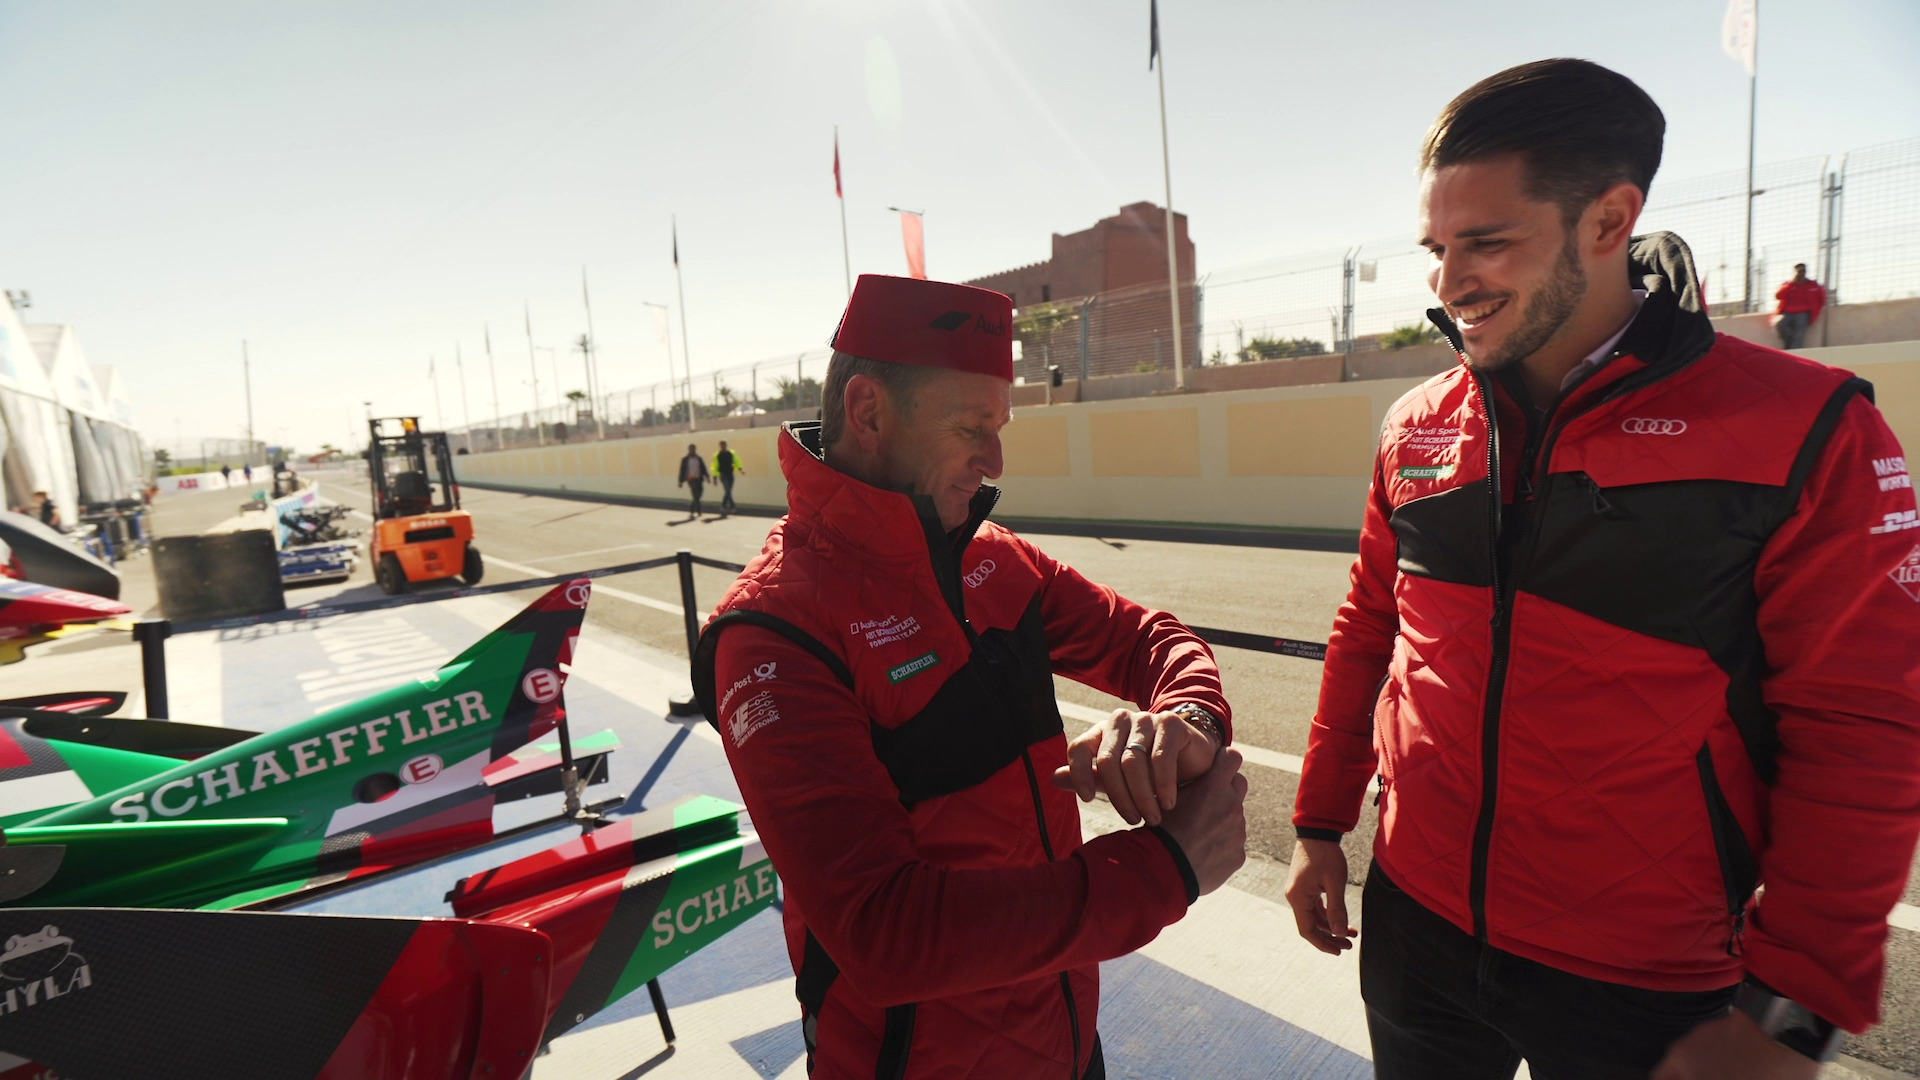 Welcome to Marrakesh: Shopping for the Team Principal